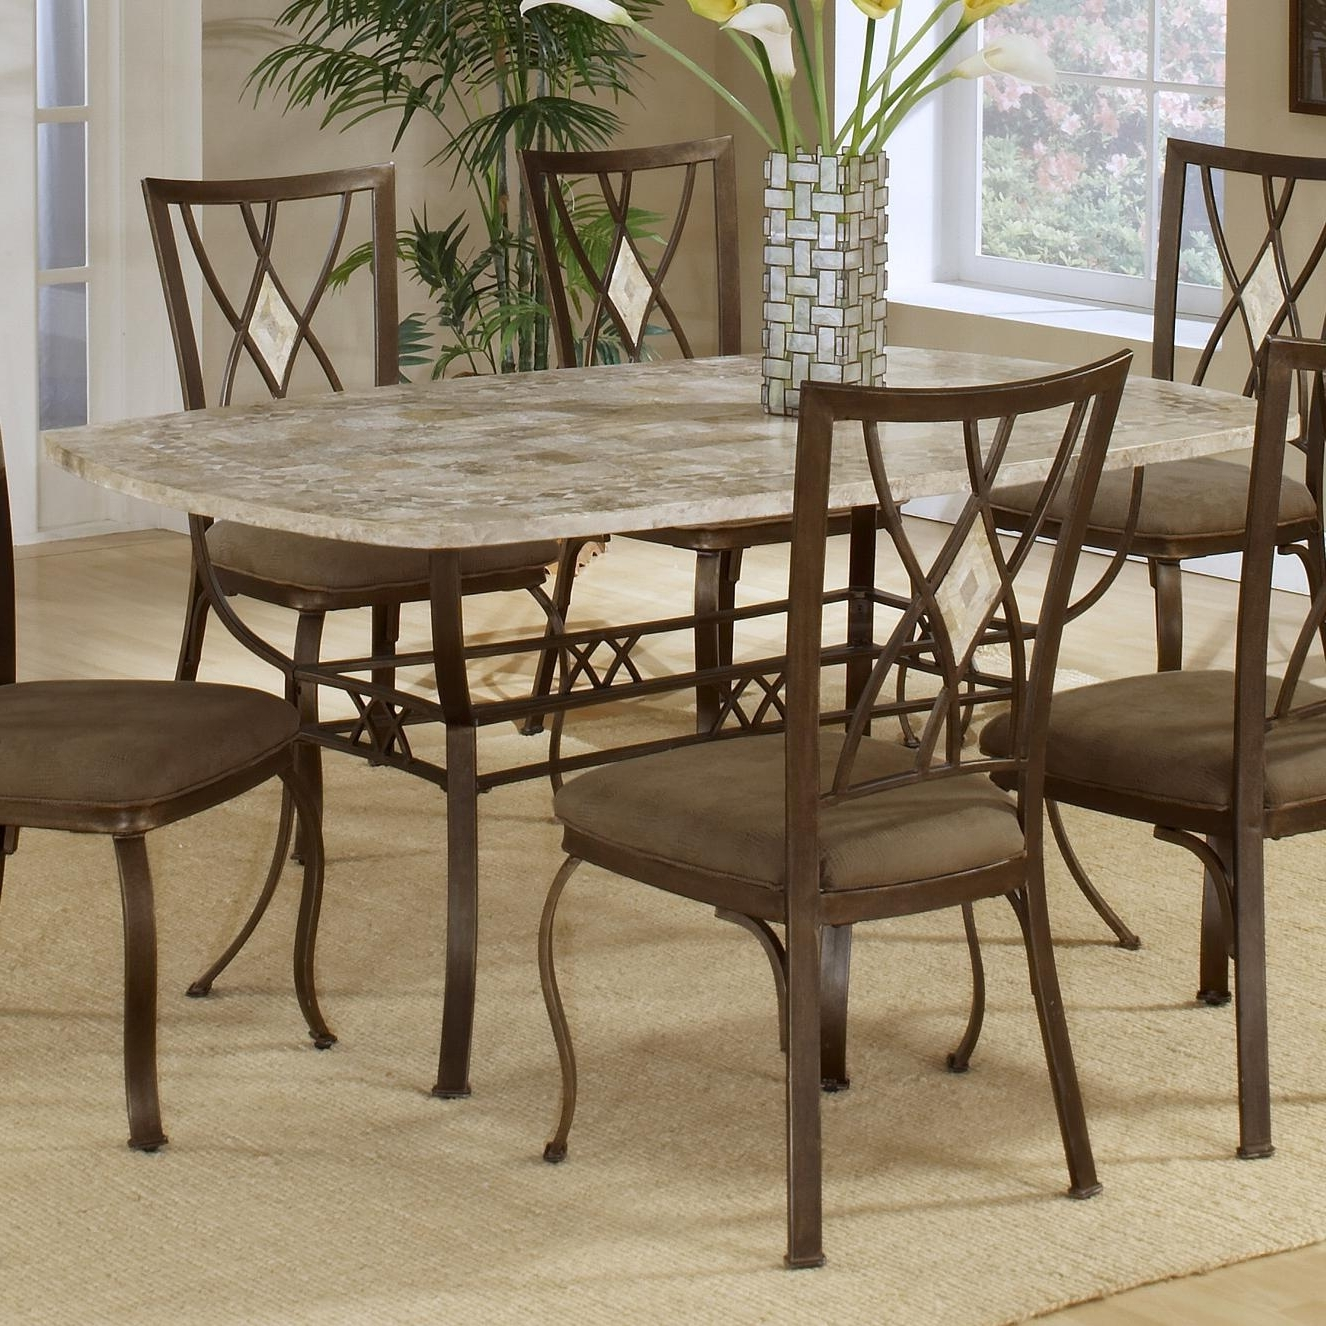 2018 Stone Dining Tables Pertaining To Brookside Rectangle Dining Table With Fossil Stone Top (View 12 of 25)